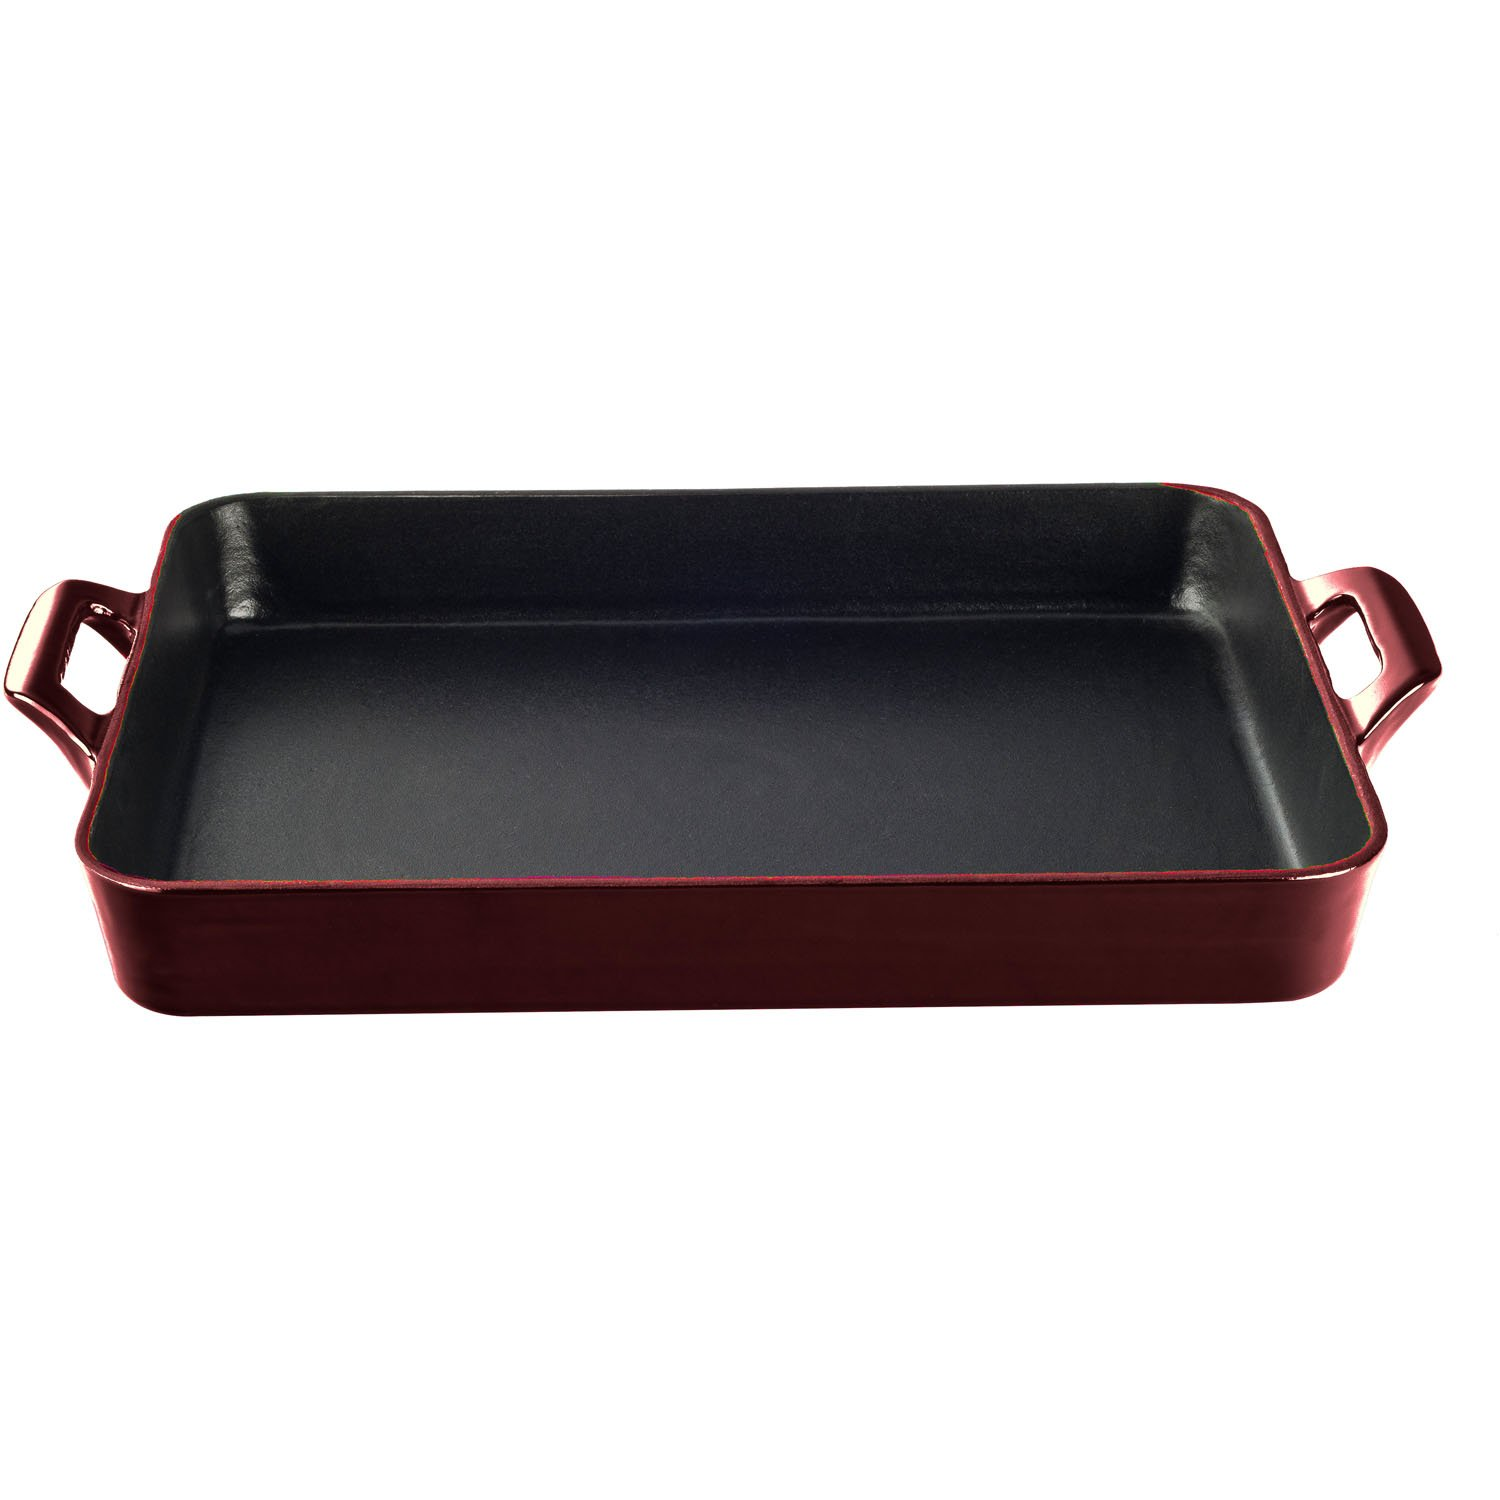 La Cuisine LC 8100 1 Piece Shallow Cast Iron Roasting Pan withエナメル仕上げ Shallow レッド LC 8105 B01LZNW39K ルビー ルビー